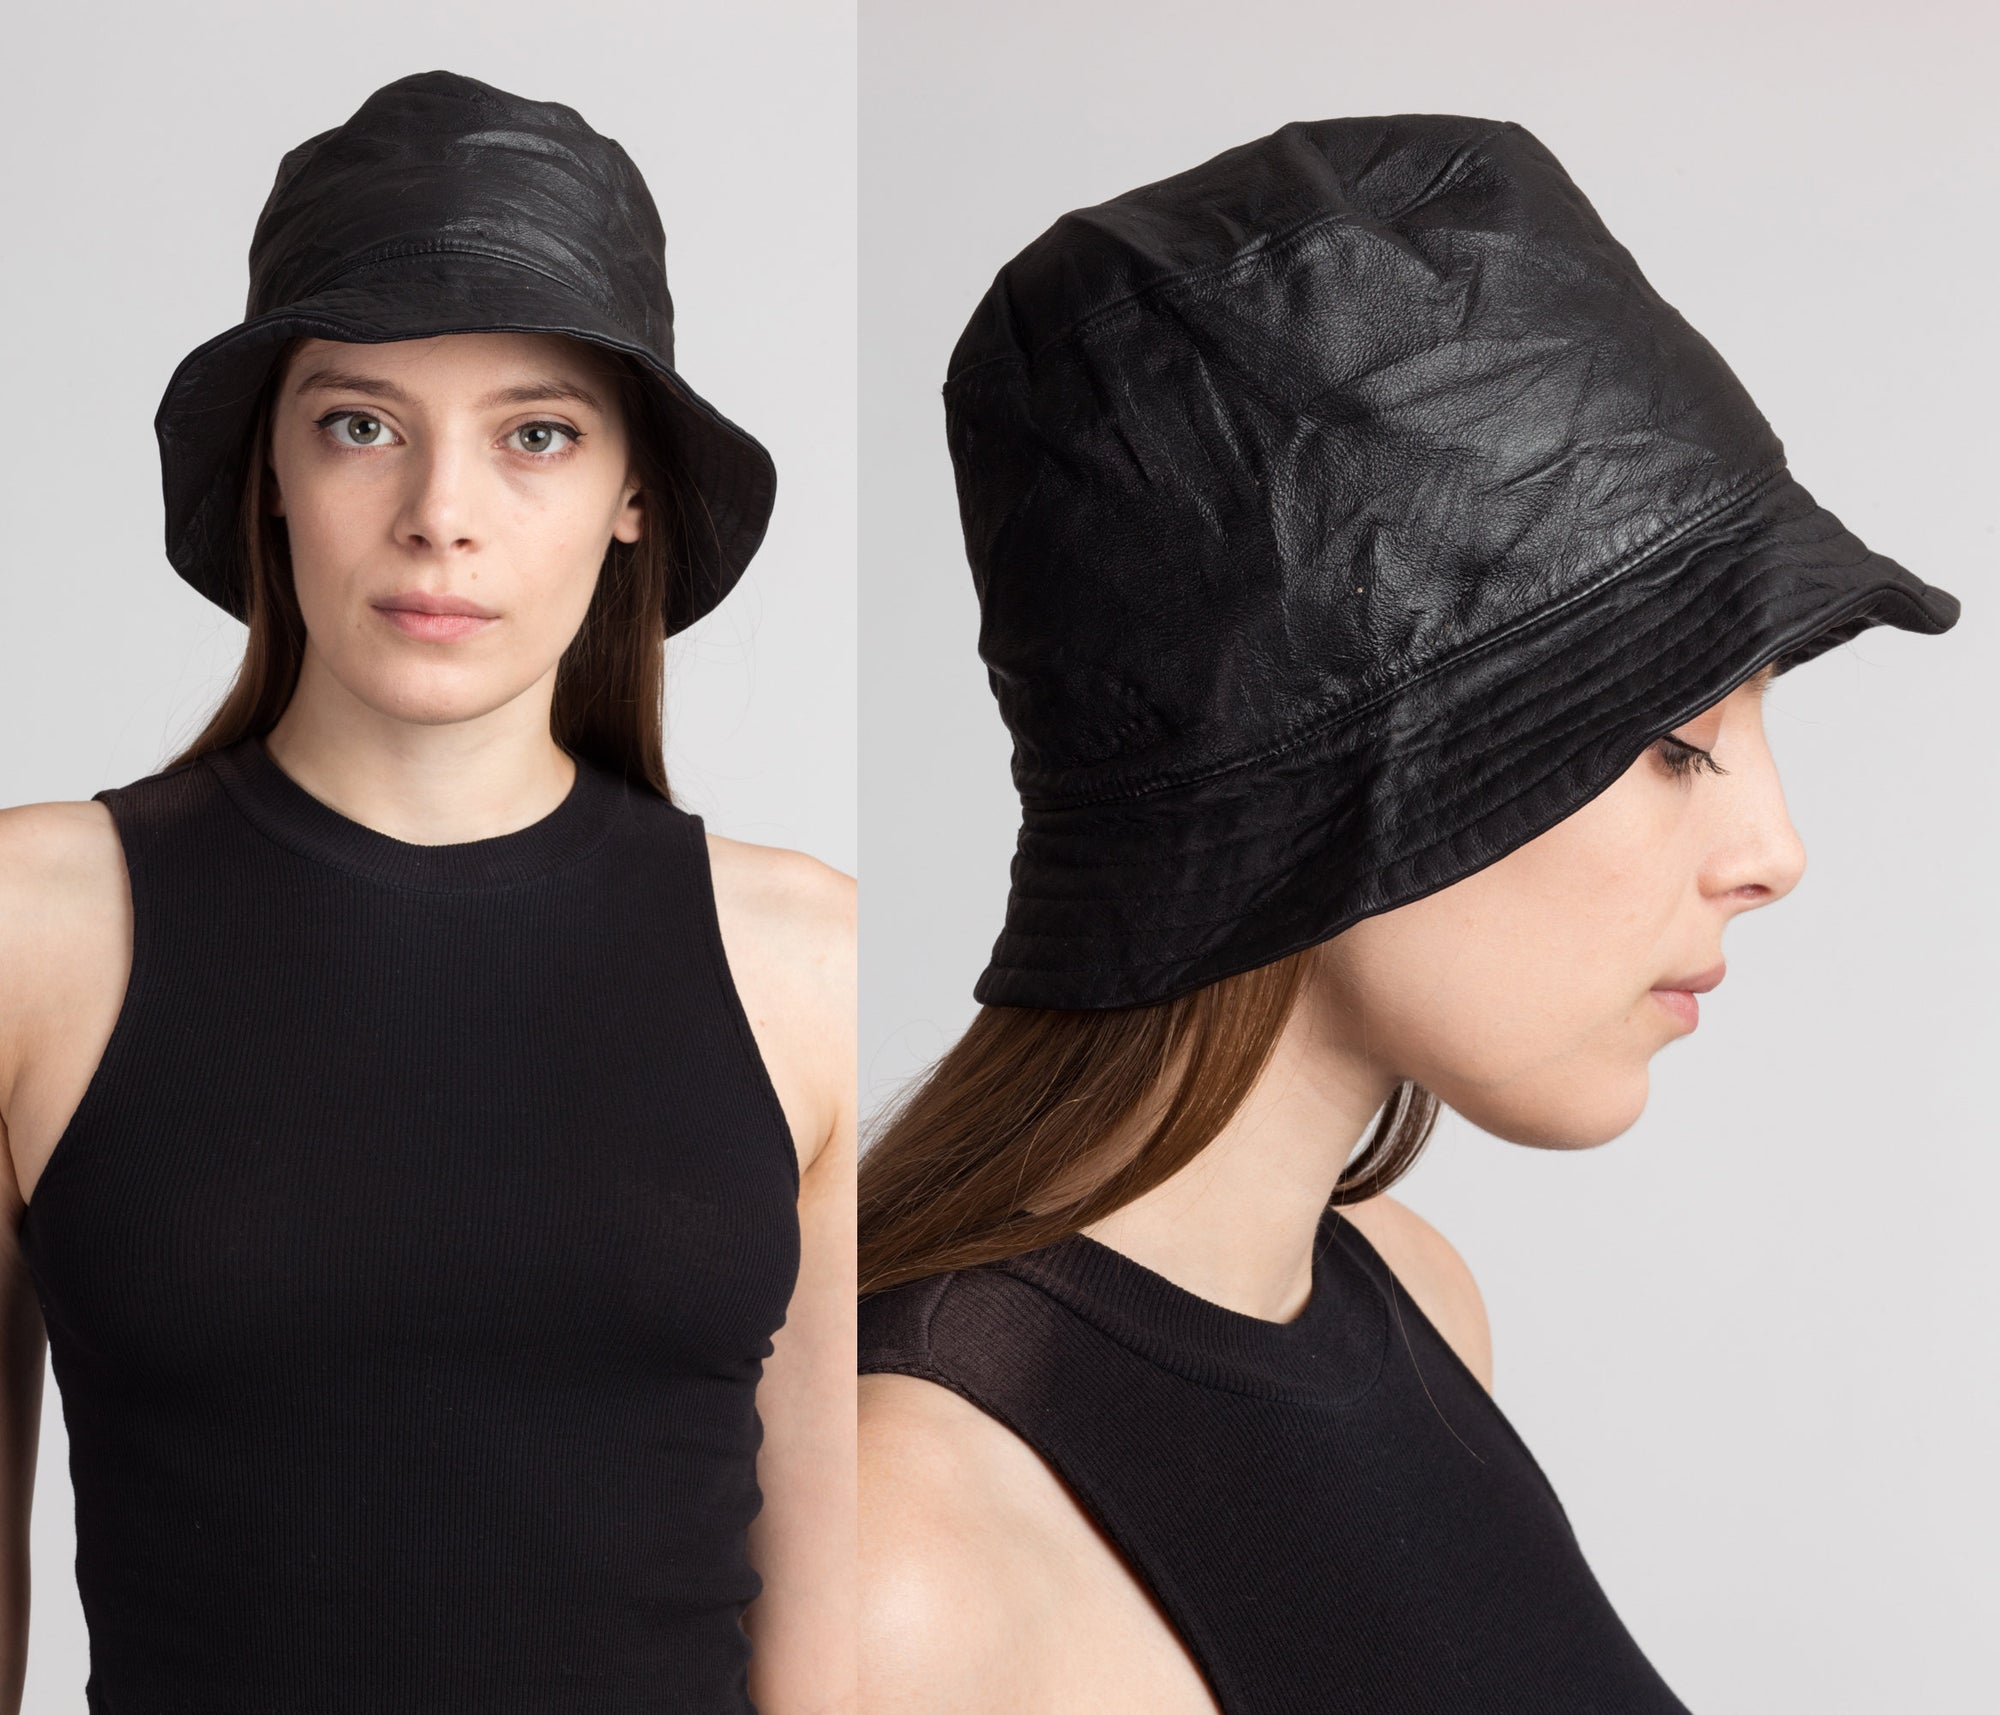 90s Black Leather Bucket Hat - Small to Medium